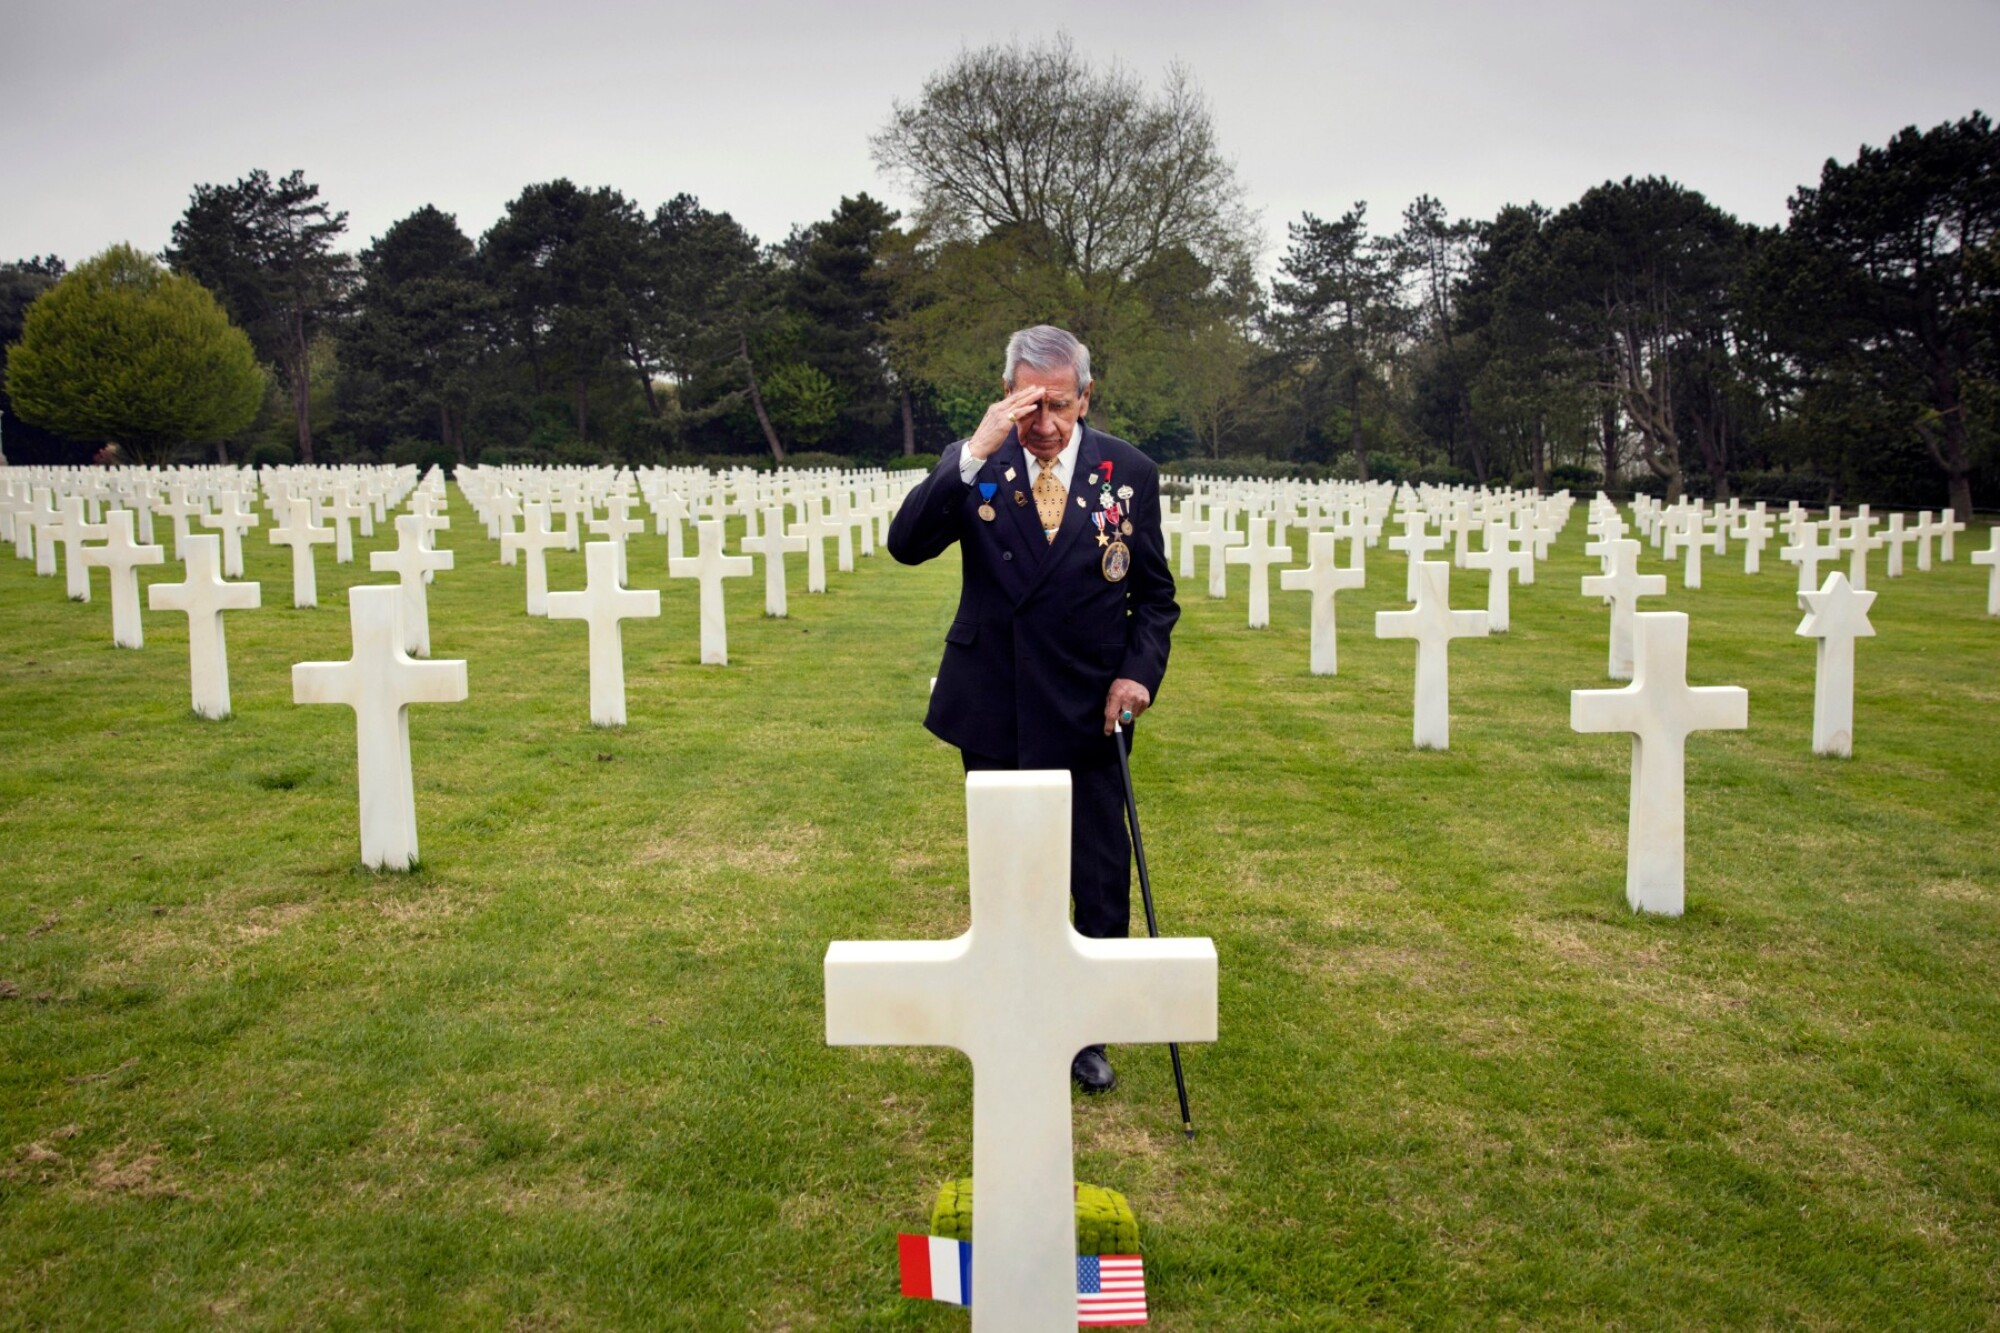 World War II and D-day veteran Charles Norman Shay from Indian Island, Me., salutes the grave of fellow soldier Edward Morozewicz at the Normandy American Cemetery in Colleville-sur-Mer in France in 2019.